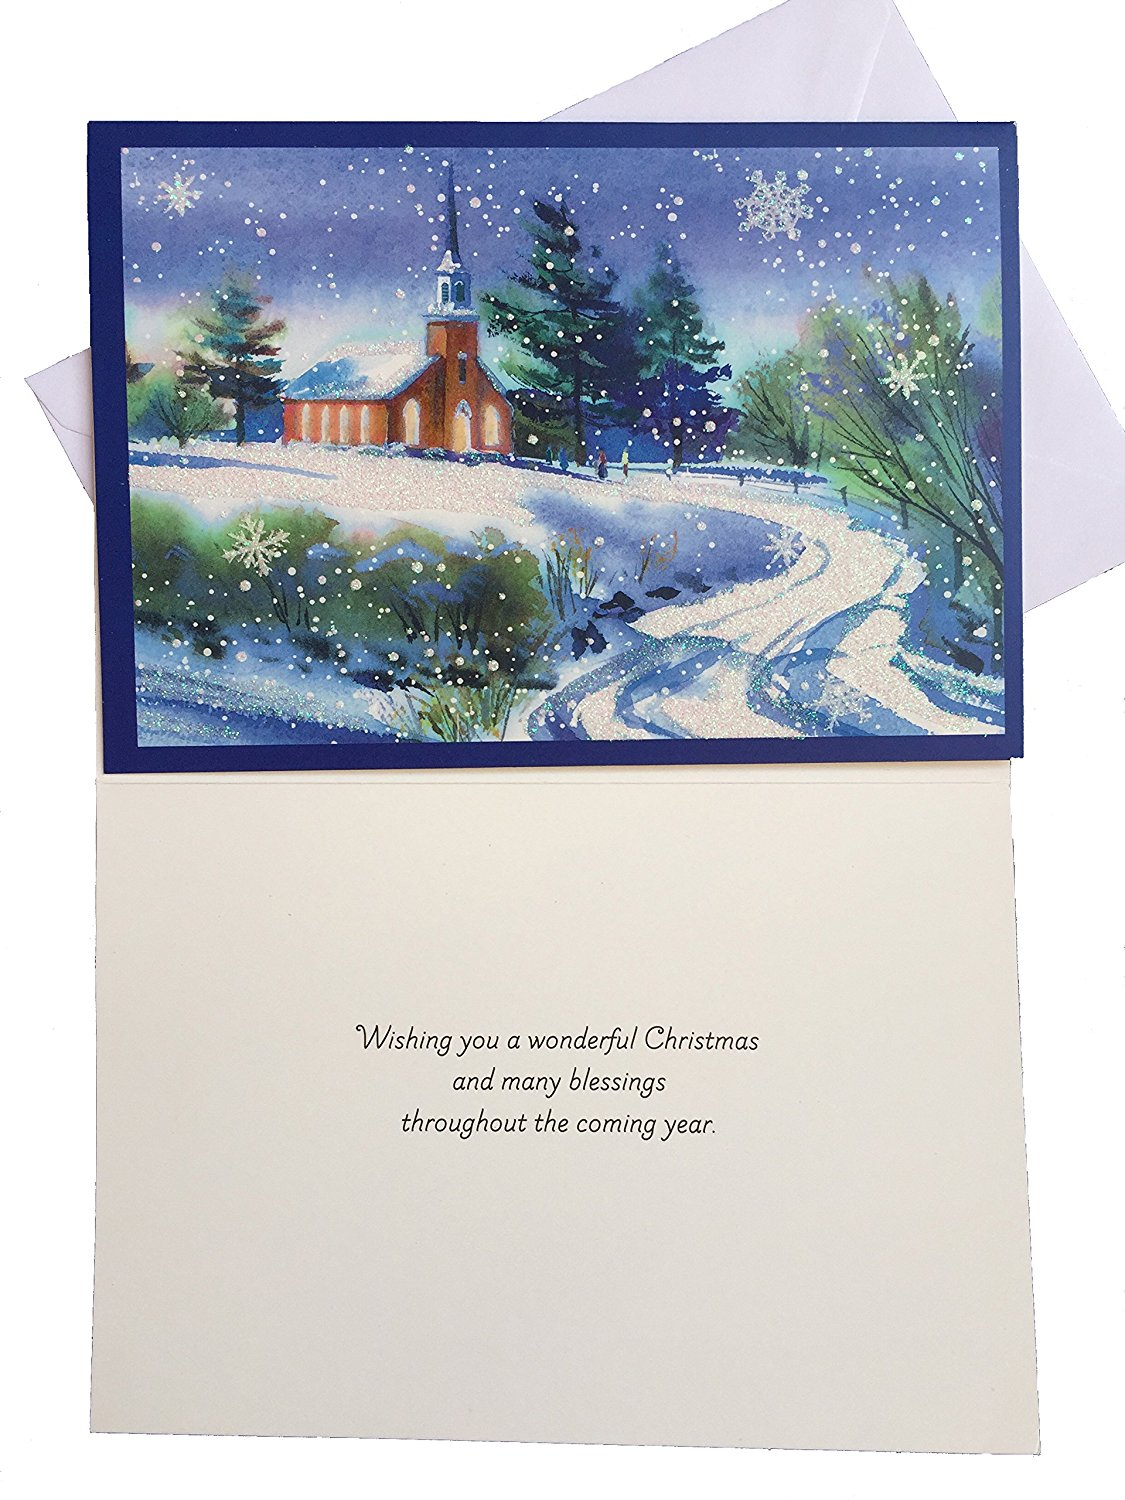 Cheap cards hallmark find cards hallmark deals on line at alibaba get quotations christmas blessings greeting cards hallmark boxed cards set with church in snow scene 16 cards bookmarktalkfo Gallery